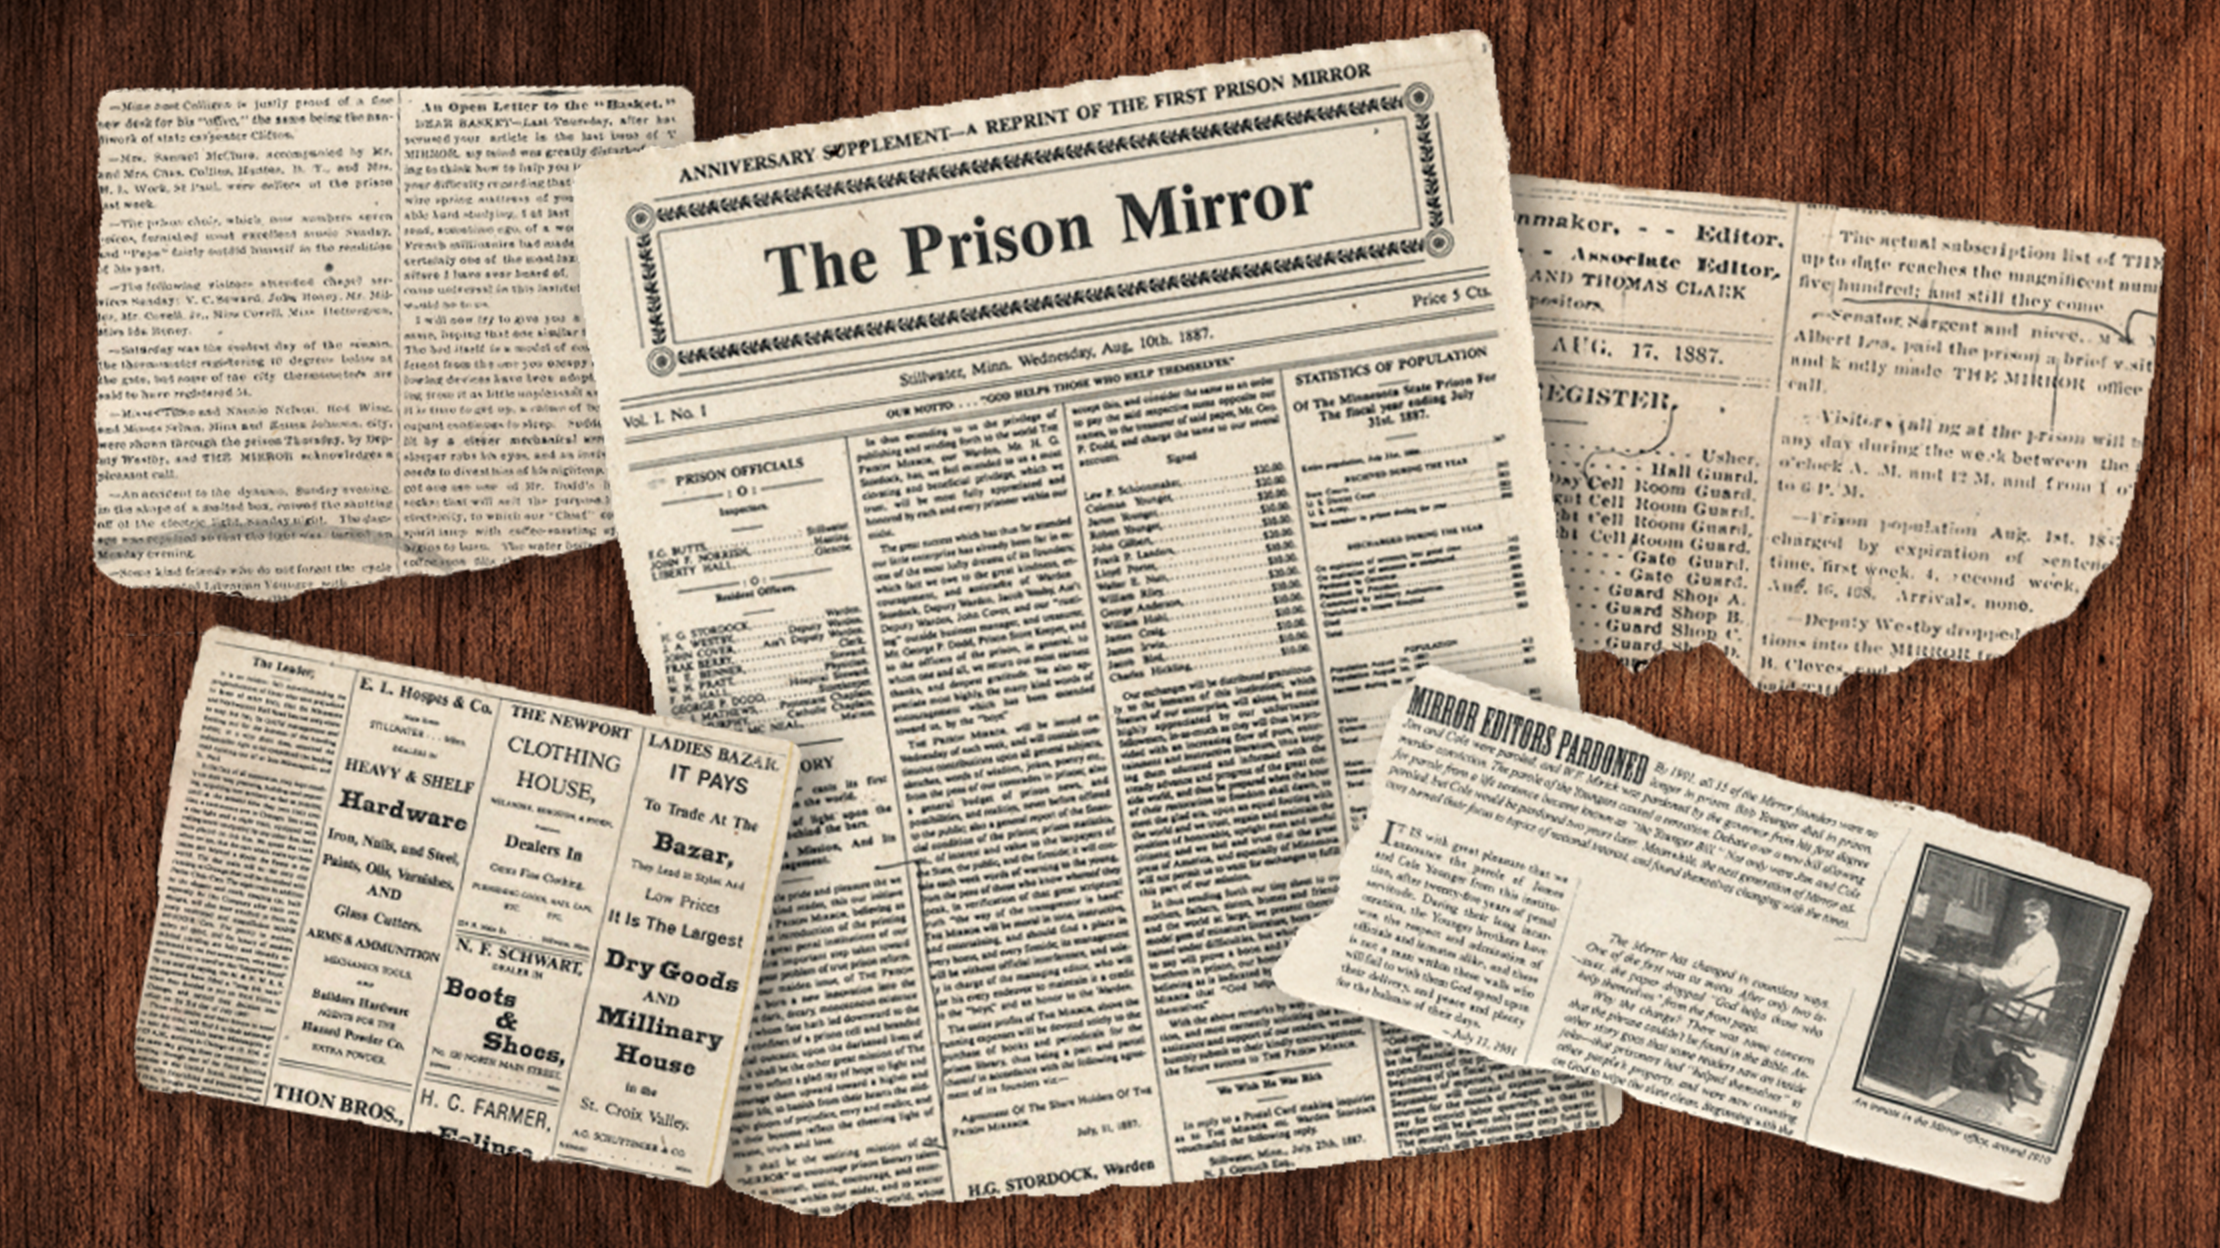 A Colorful History of <em>The Prison Mirror</em>, America's Oldest Continuously Operated Prison Newspaper